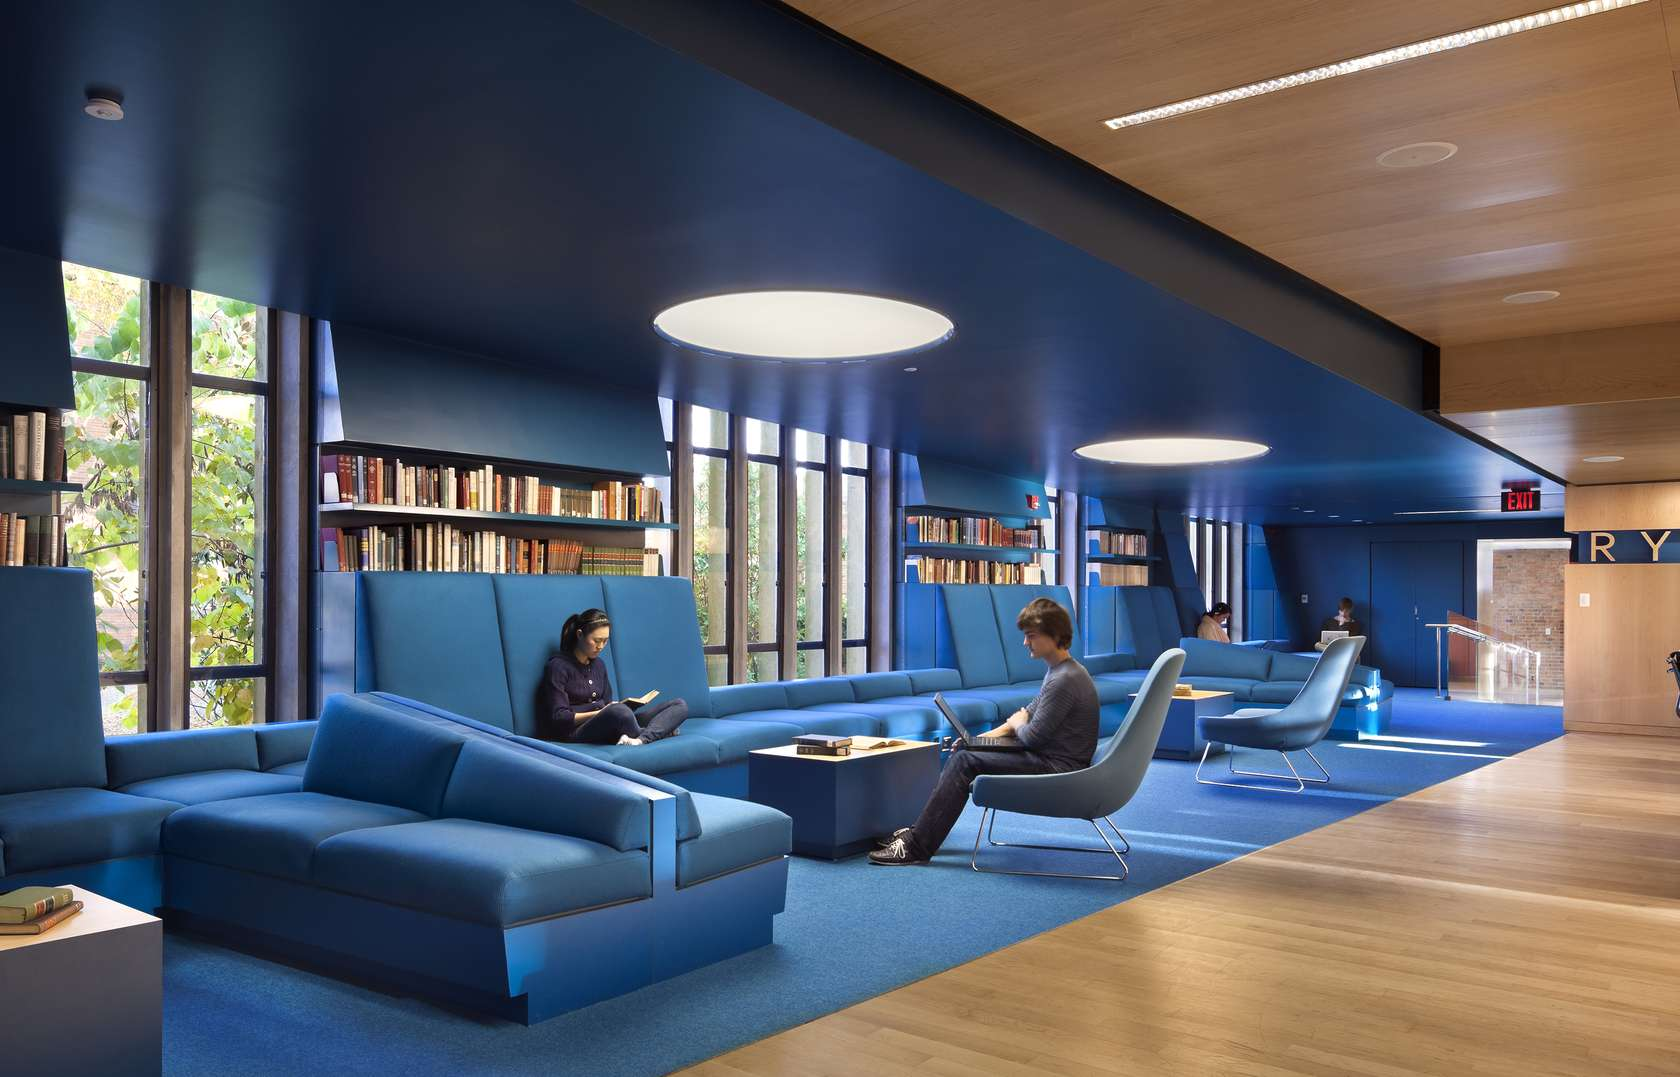 Julian street library at princeton university architizer for Library designs interior